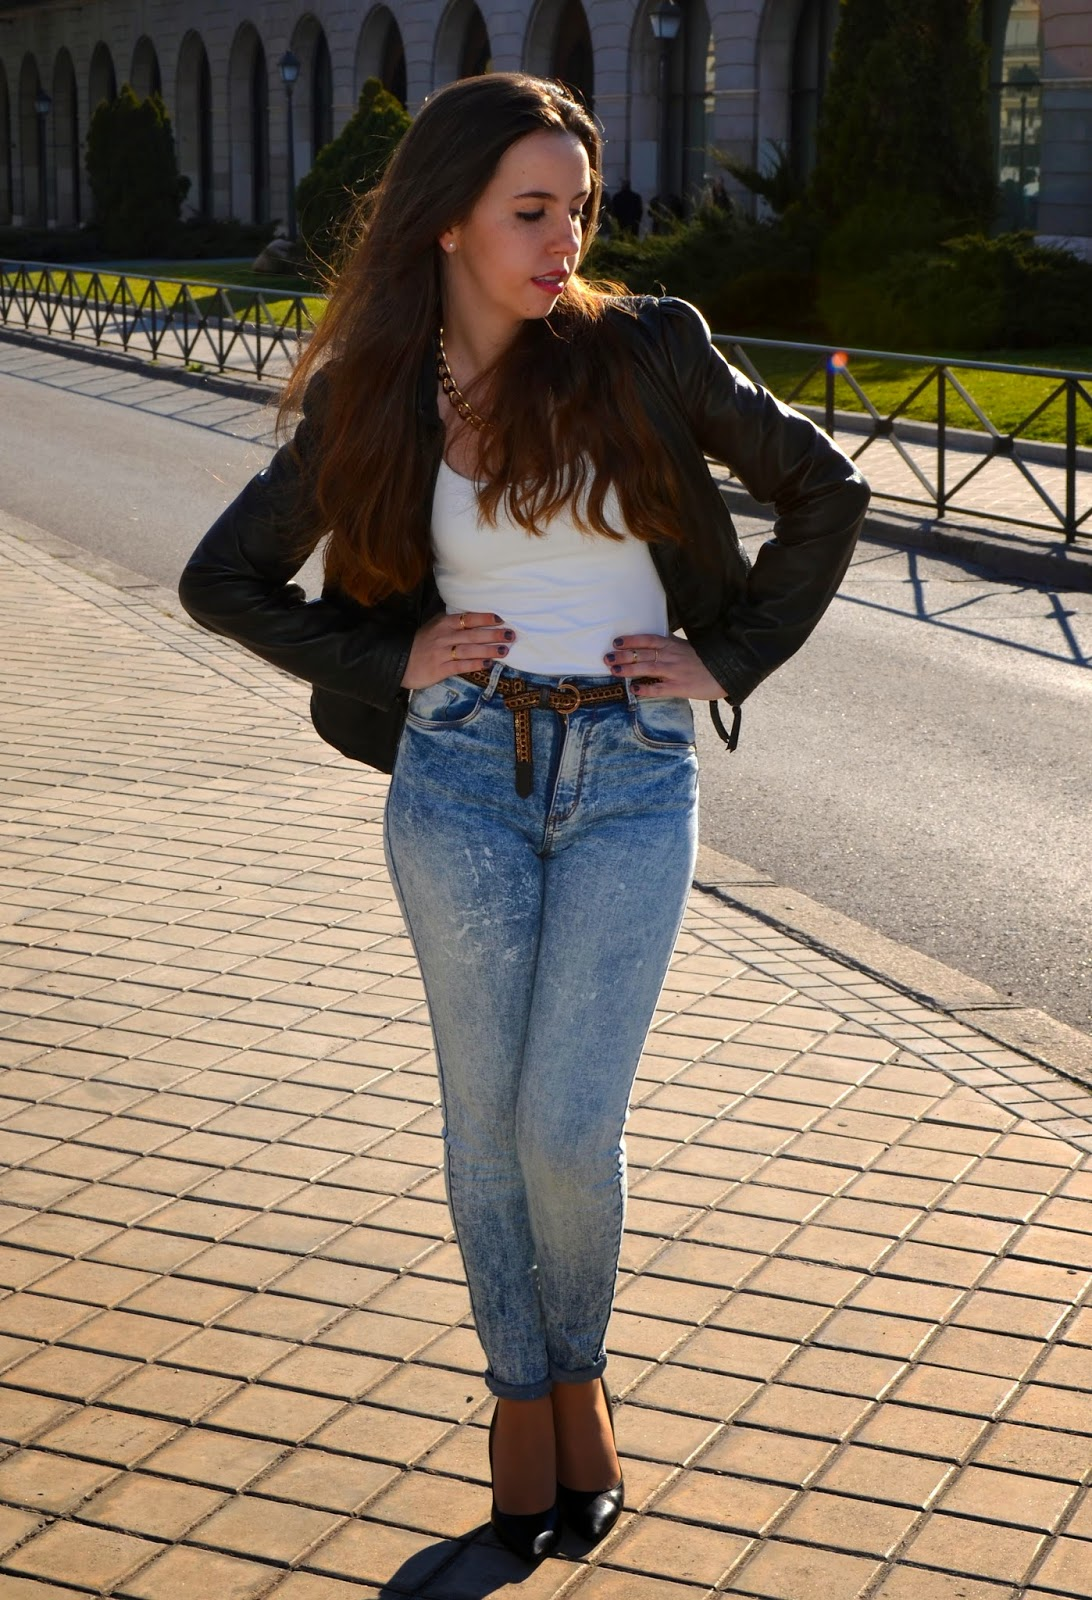 hey vicky hey, victoria suarez, sunny days, blogger, fashion, bershka, tie dye, madrid